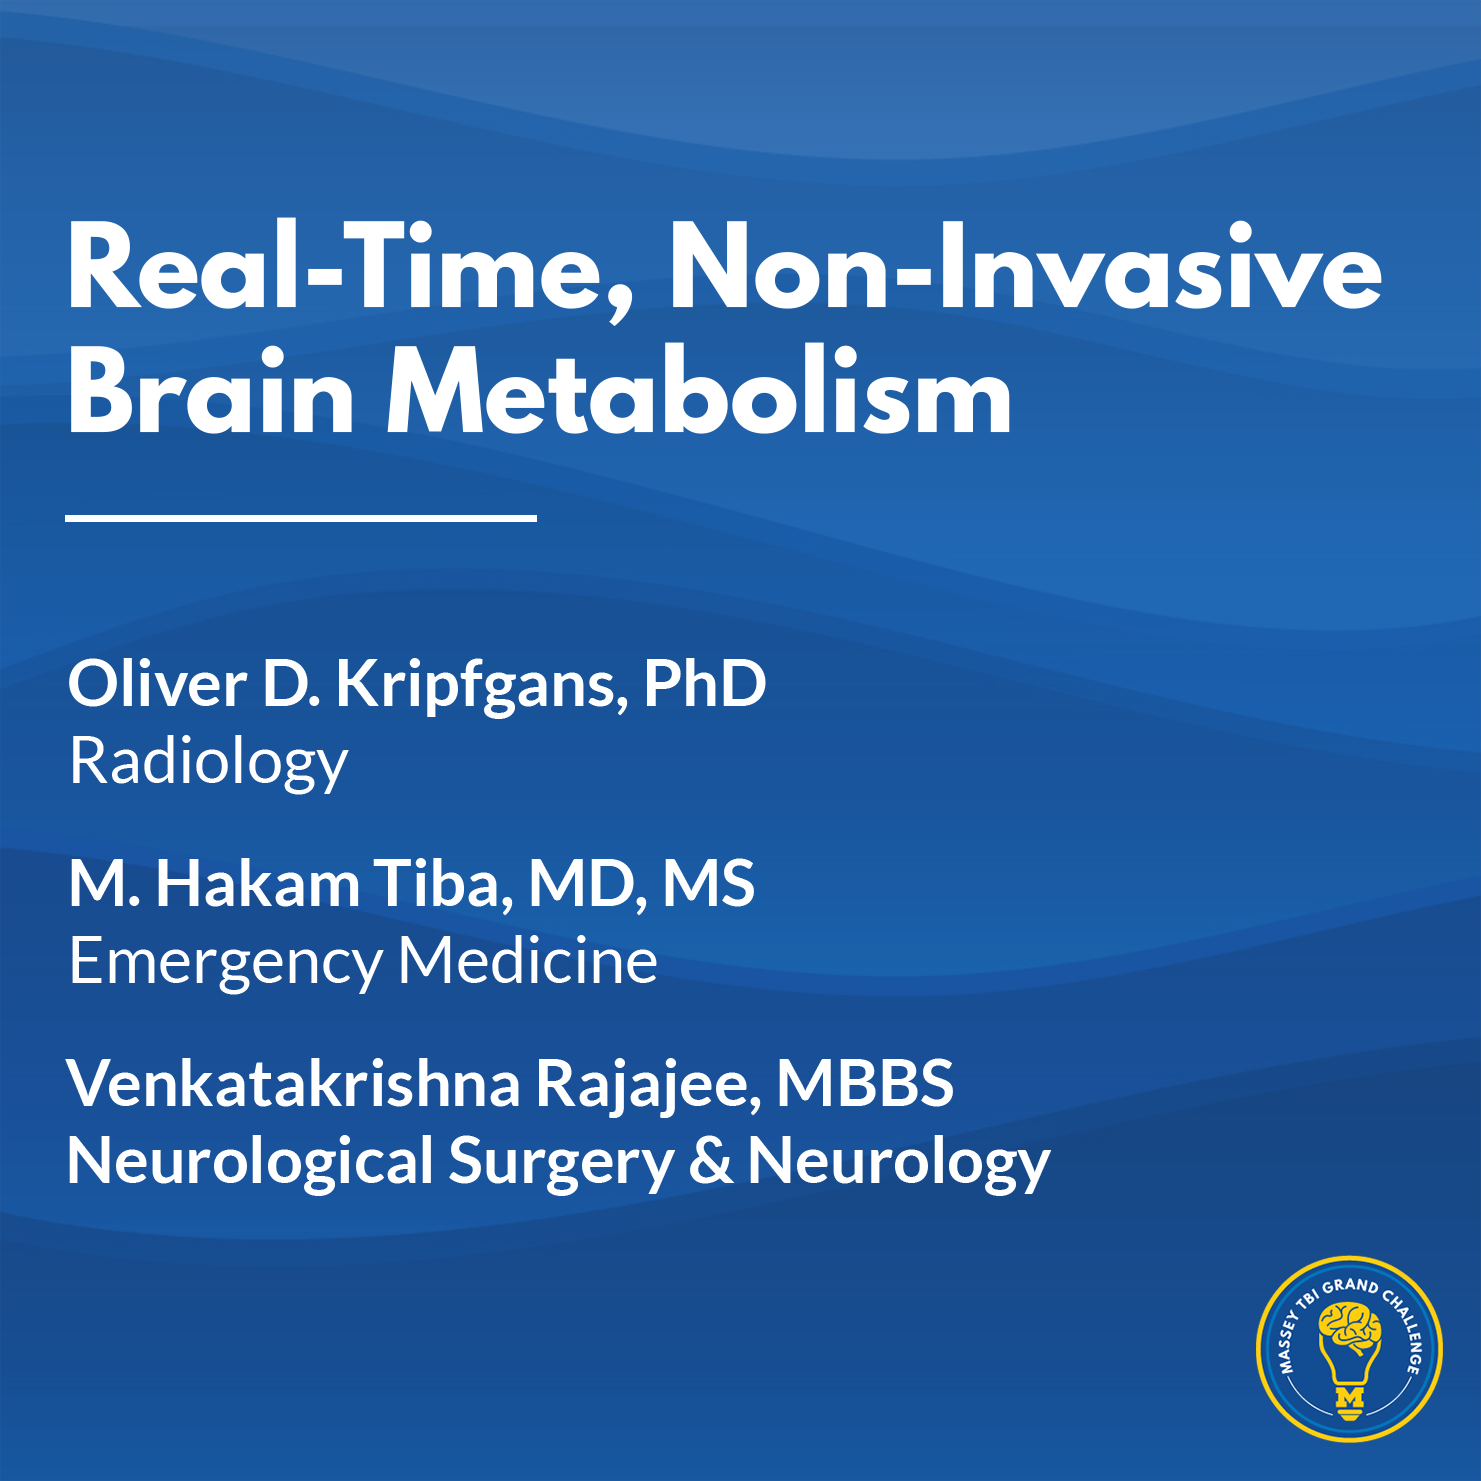 Research Thumbnail Template - Real-Time, Non-Invasive Brain Metabolism - Kripfgans.png